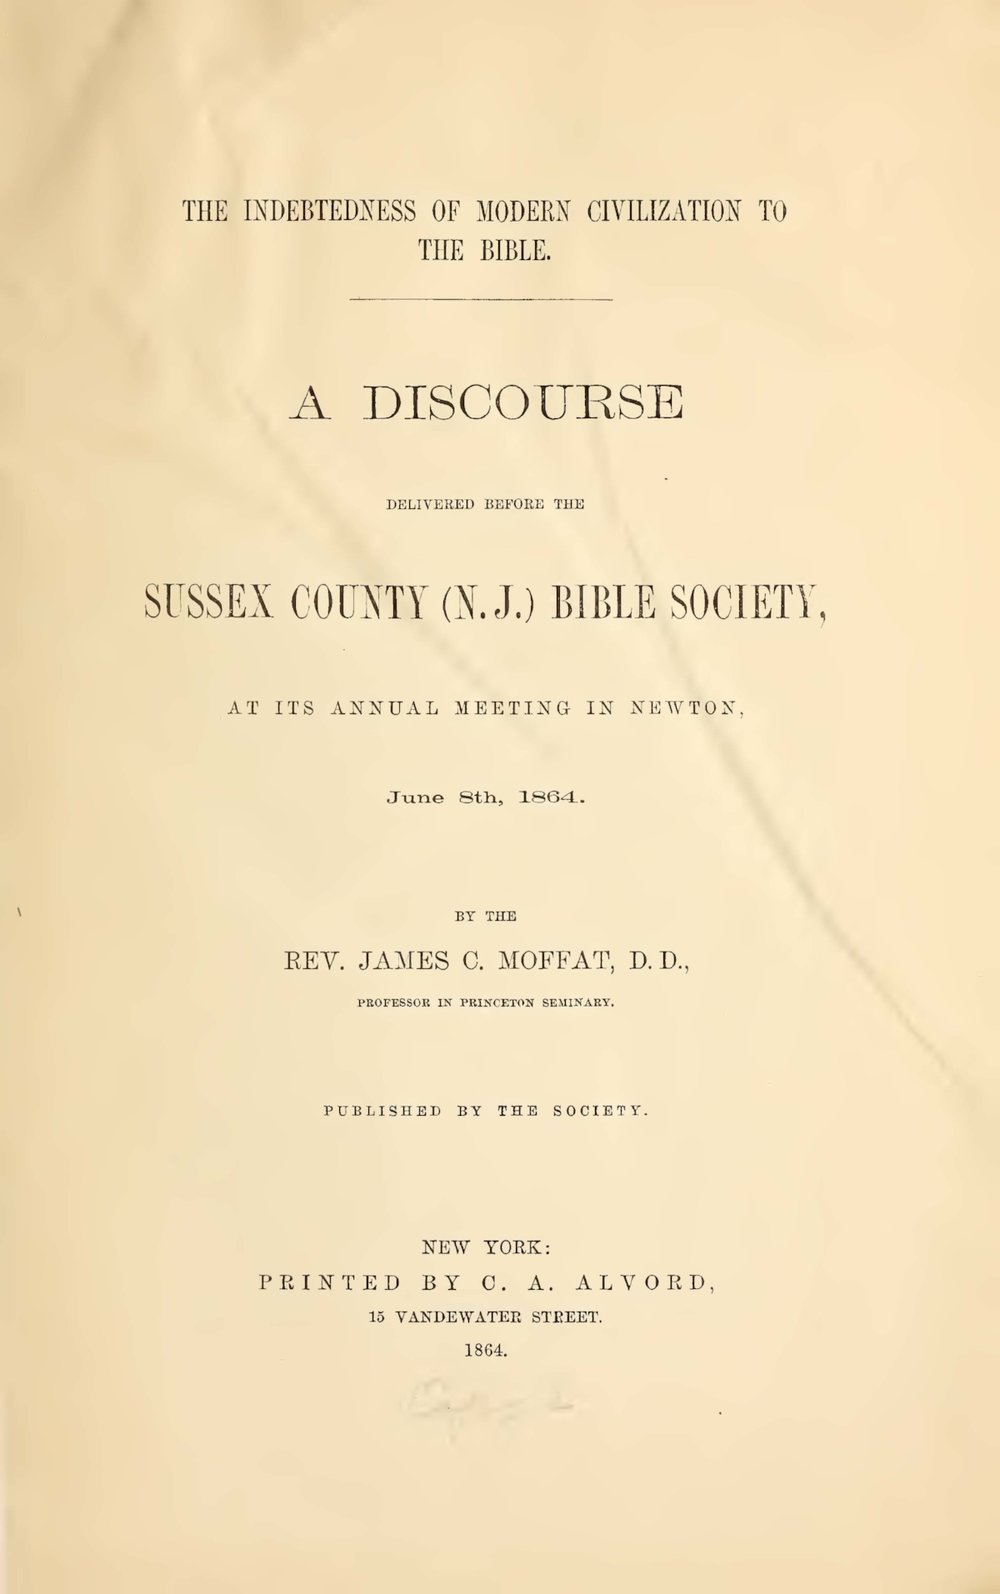 Moffat, James Clement, The Indebtedness of Modern Civilization to the Bible Title Page.jpg